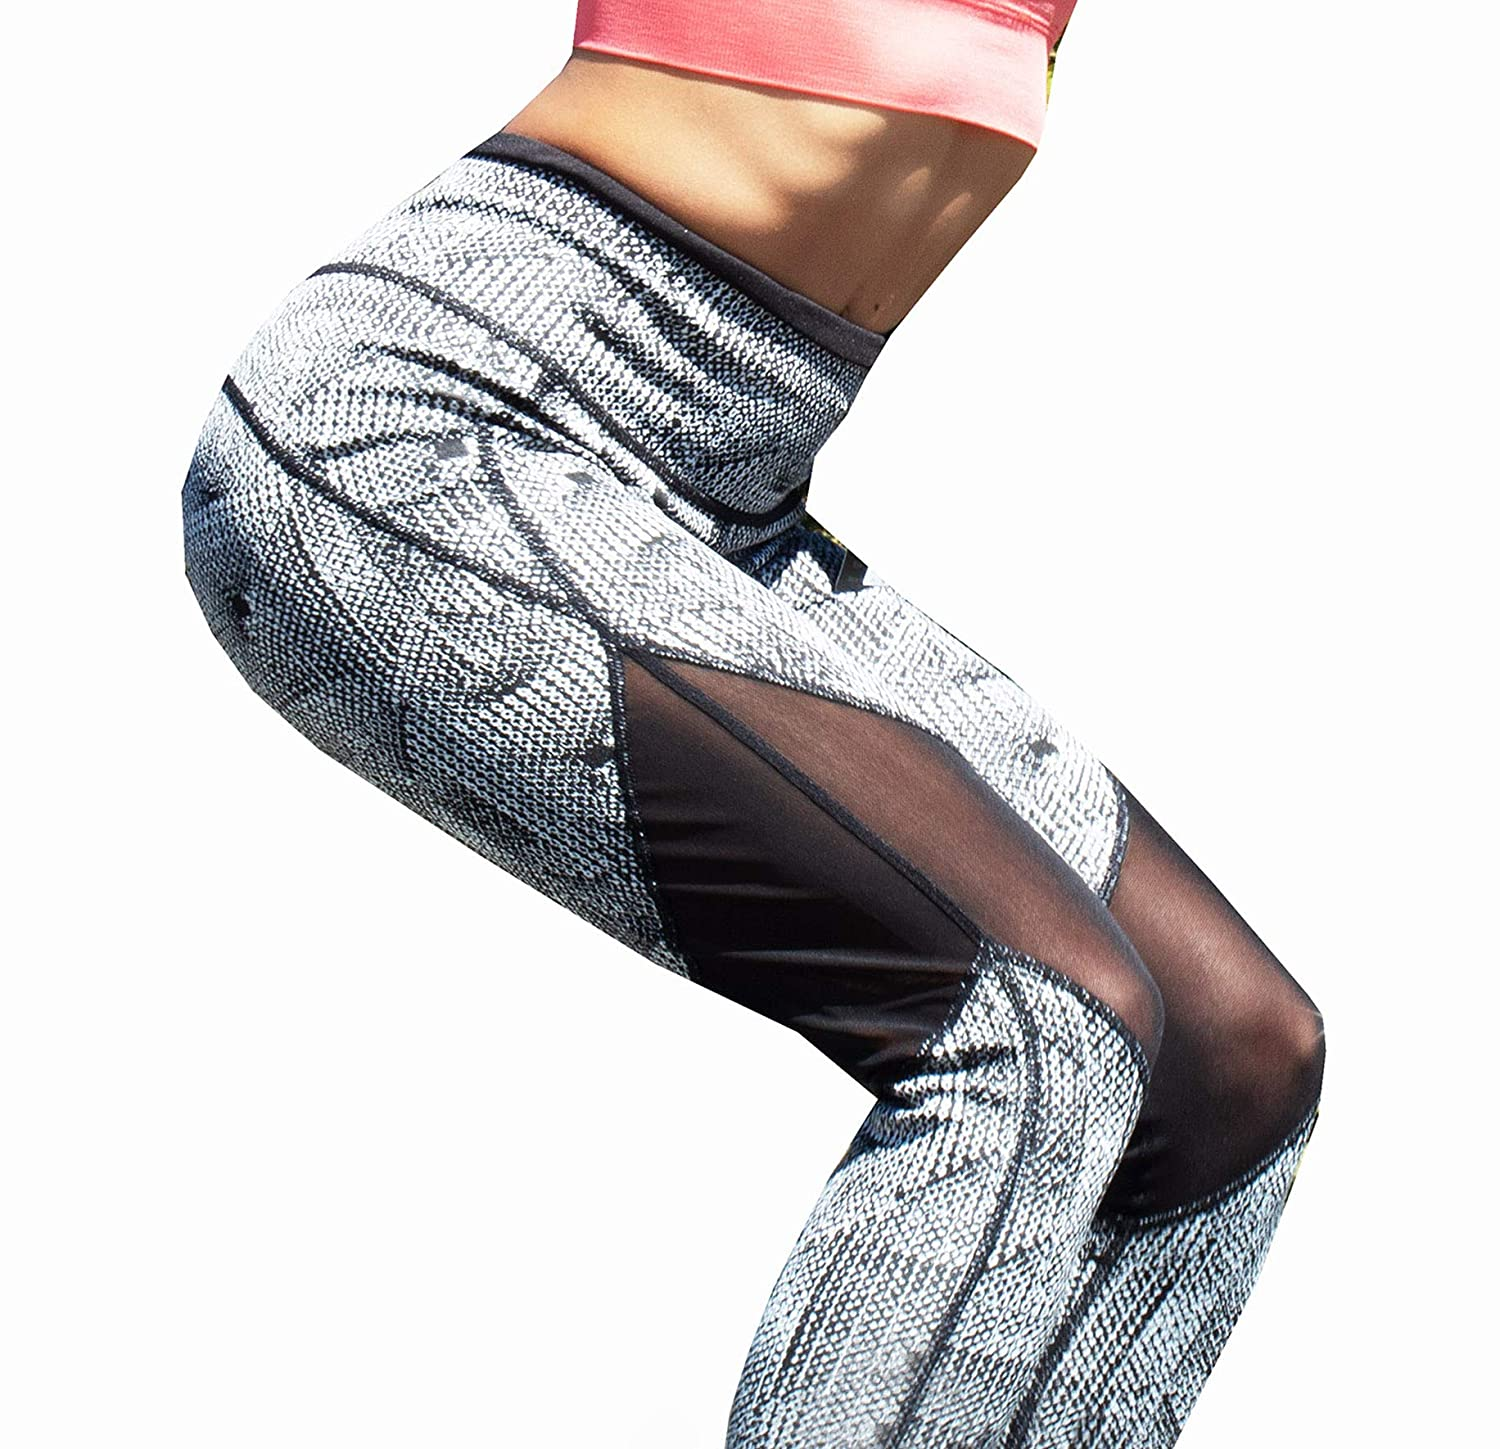 bbd2500d30 Amazon.com: Runner Island Womens White & Black Digital Patterned Workout  Leggings High Waist Compression Mesh for Running: Clothing